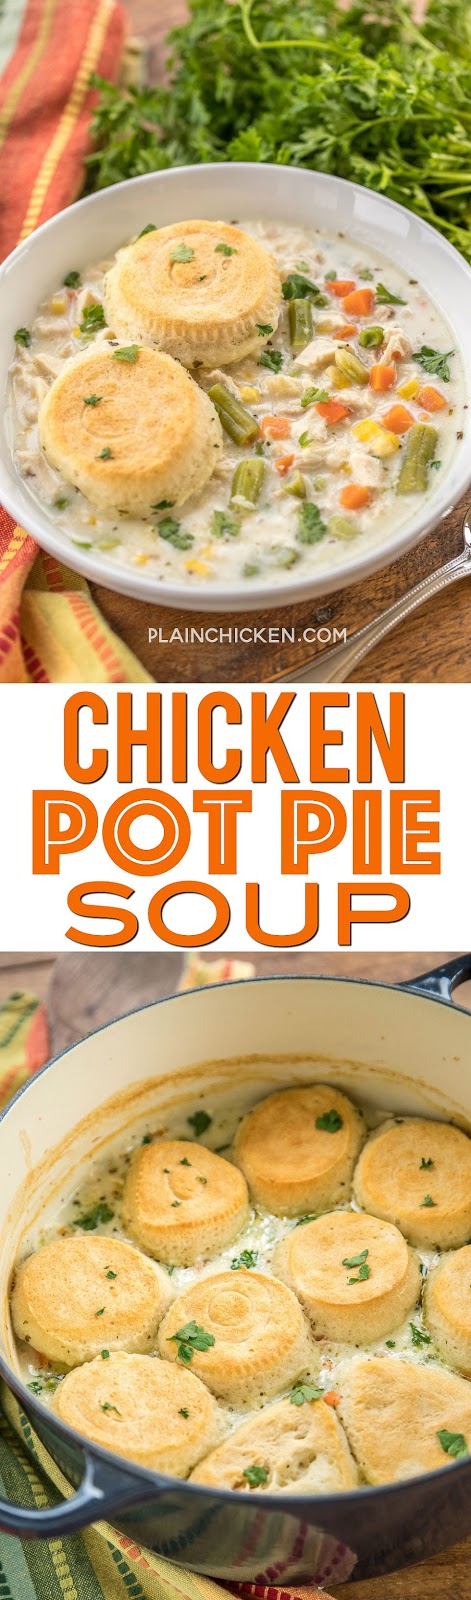 Chicken Pot Pie Soup - comfort in a bowl! Quick homemade soup with biscuits baked on top. Chicken, chicken broth, mixed vegetables, seasonings, and refrigerated biscuits. Ready in 30 minutes! Everyone LOVED this soup!!! So easy!! #soup #chicken #onepotmeal #comfortfood